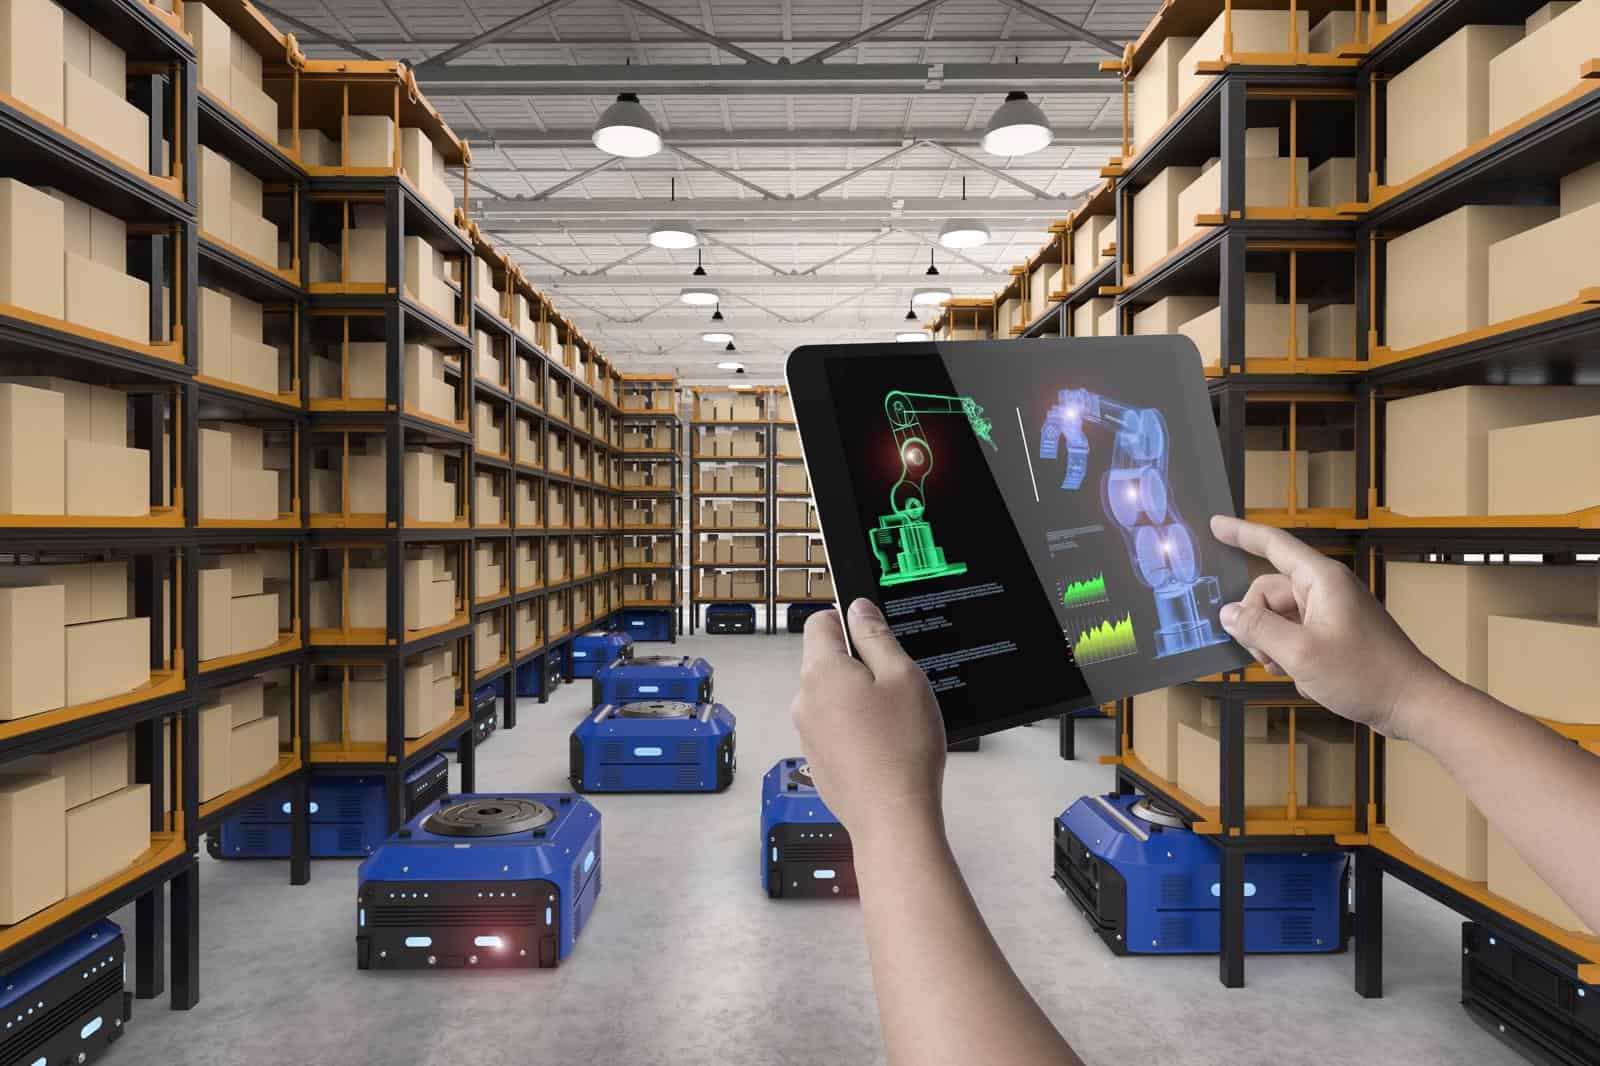 smart factories, lean manufacturing